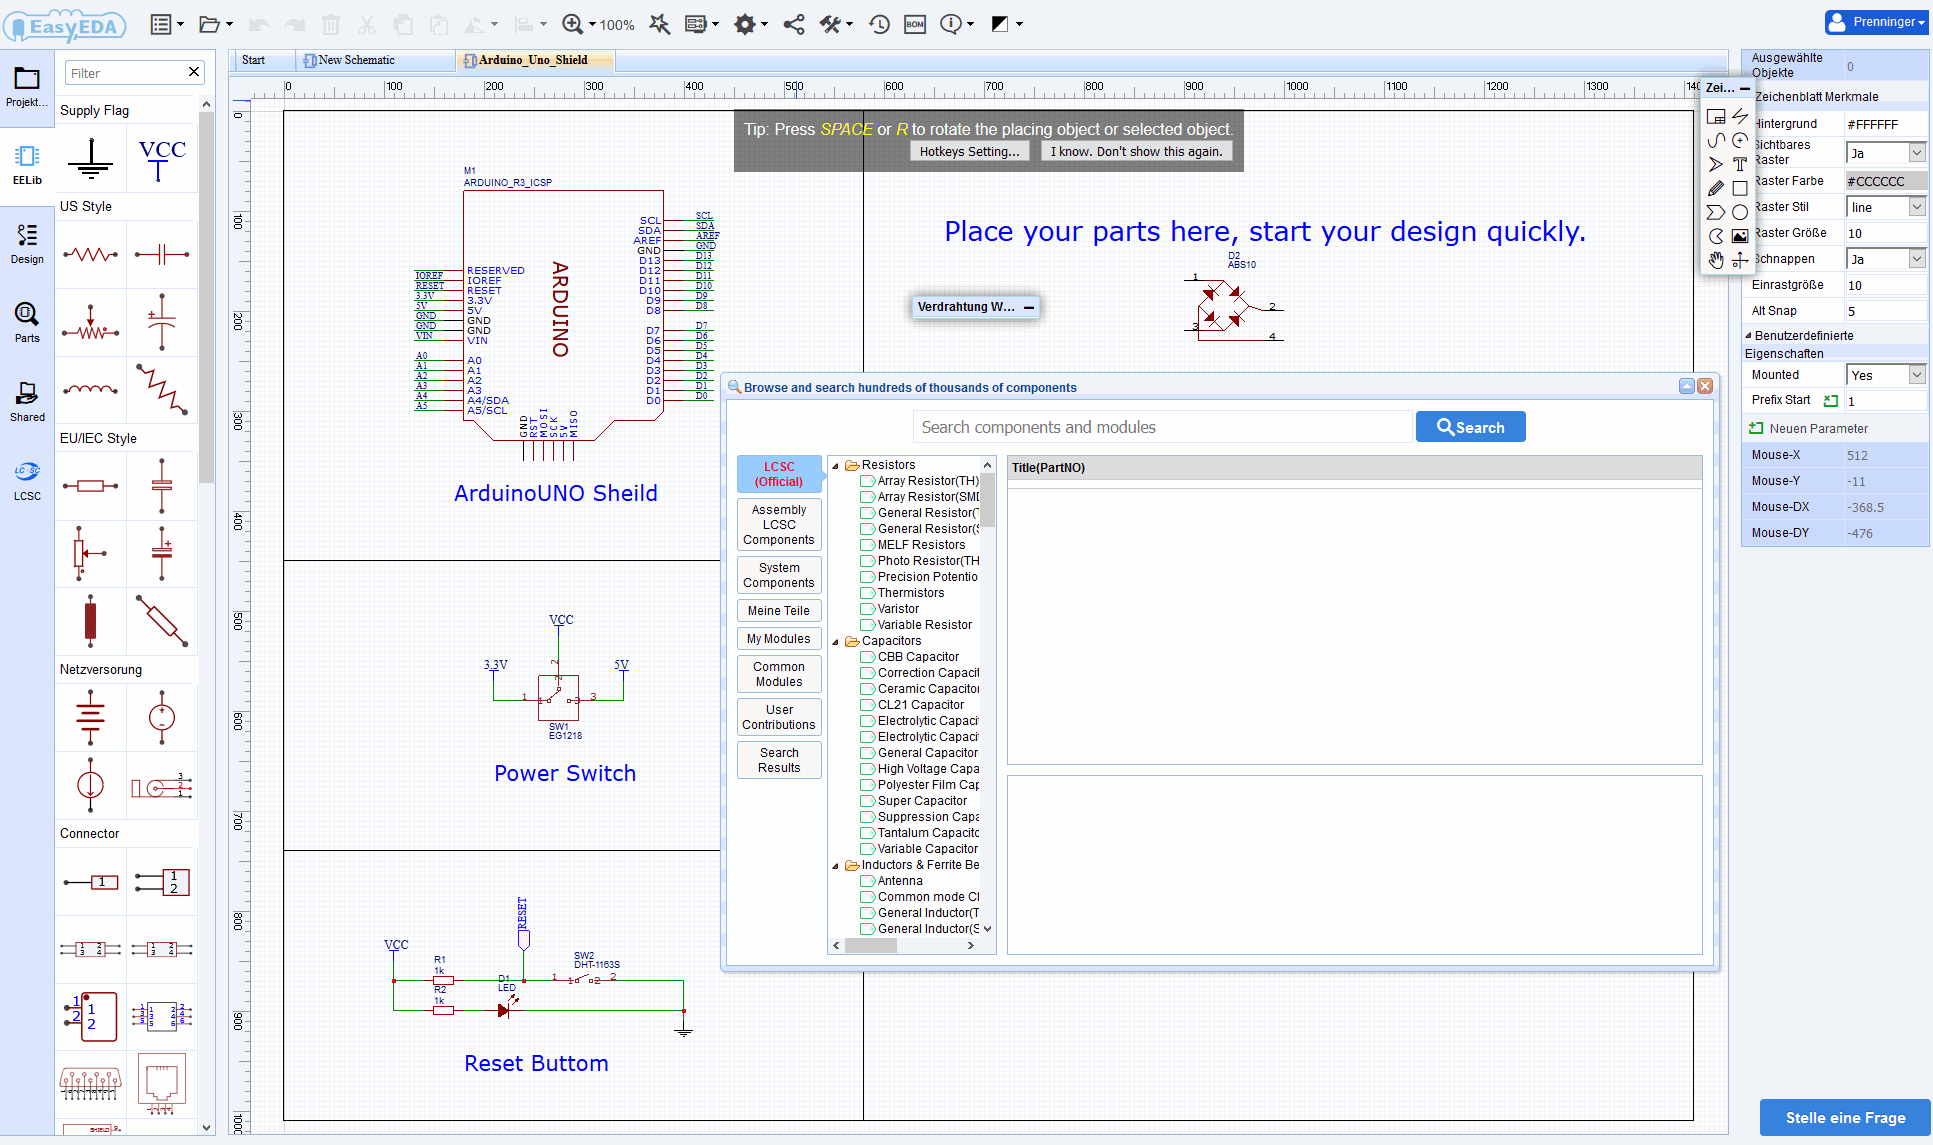 2018-02-28 17_39_23-EasyEDA - A Simple and Powerful Electric Circuit Design Tool.png